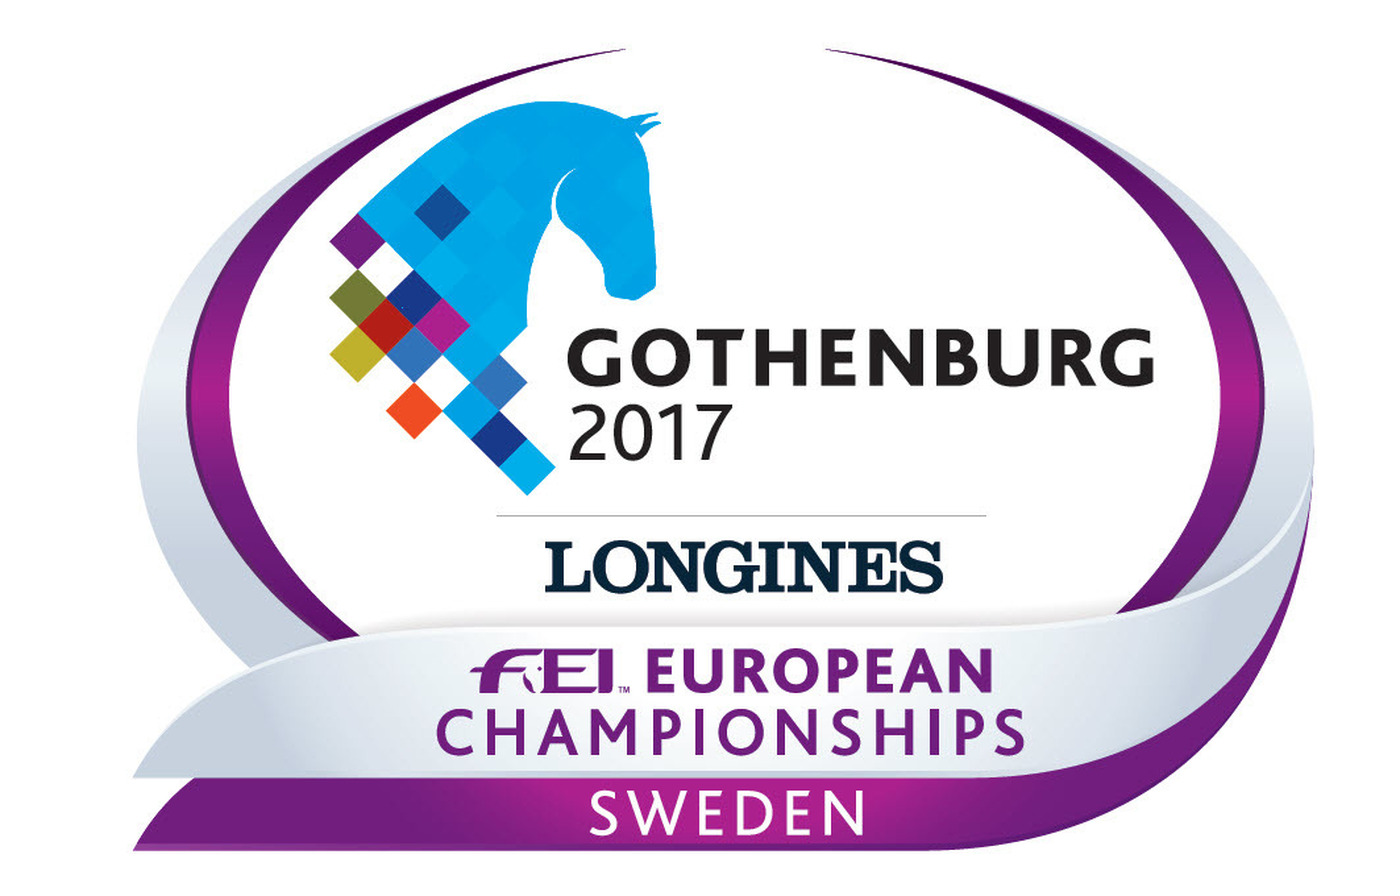 Longines Show Jumping Event: Longines to become Title Partner of the Longines FEI European Championships 1